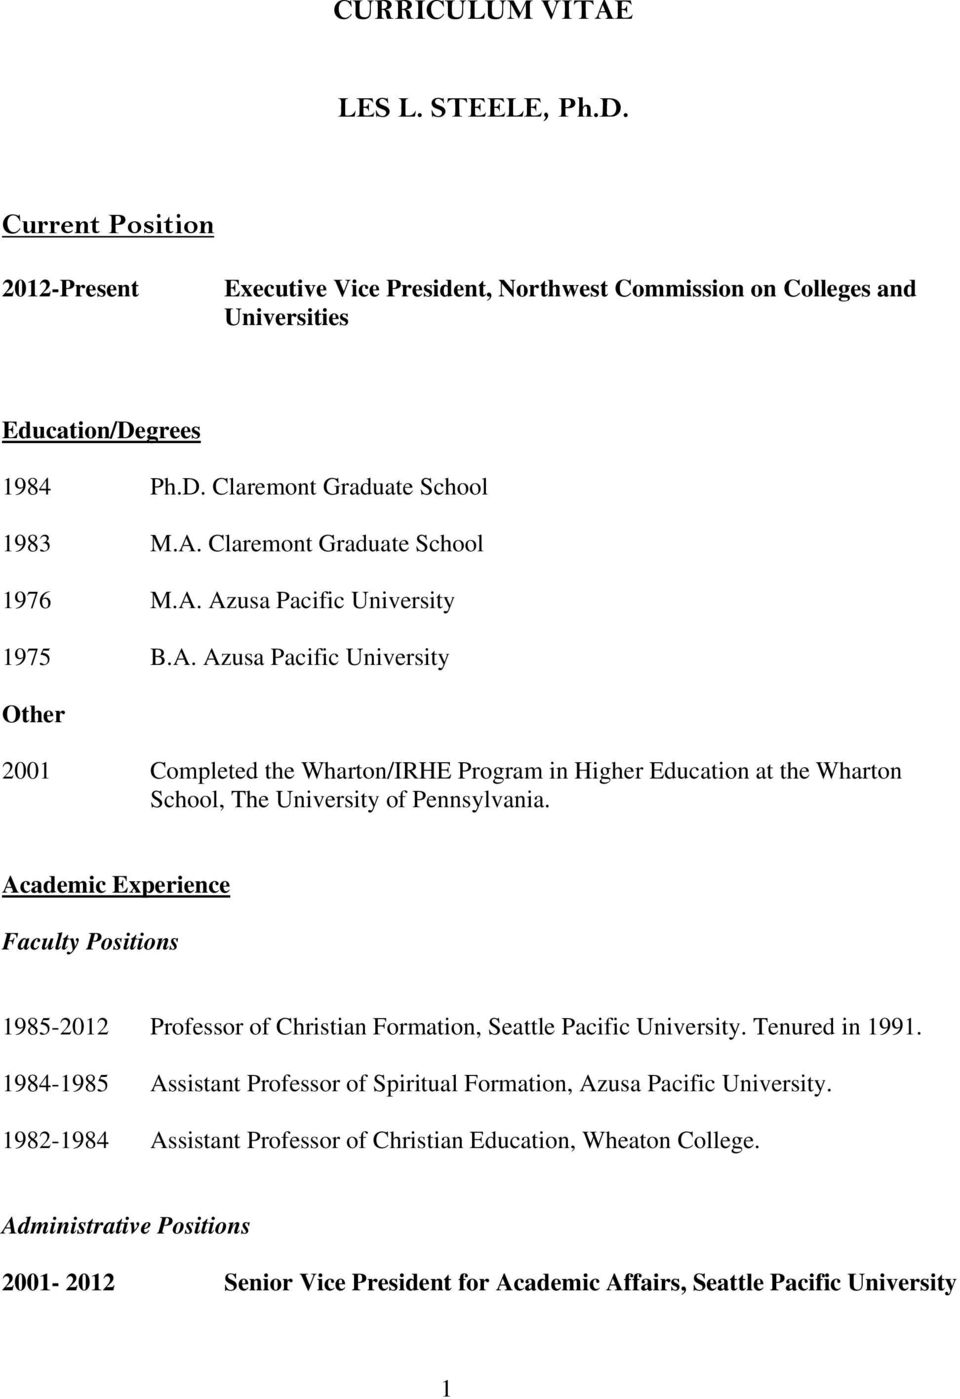 Academic Experience Faculty Positions 1985-2012 Professor of Christian Formation, Seattle Pacific University. Tenured in 1991.